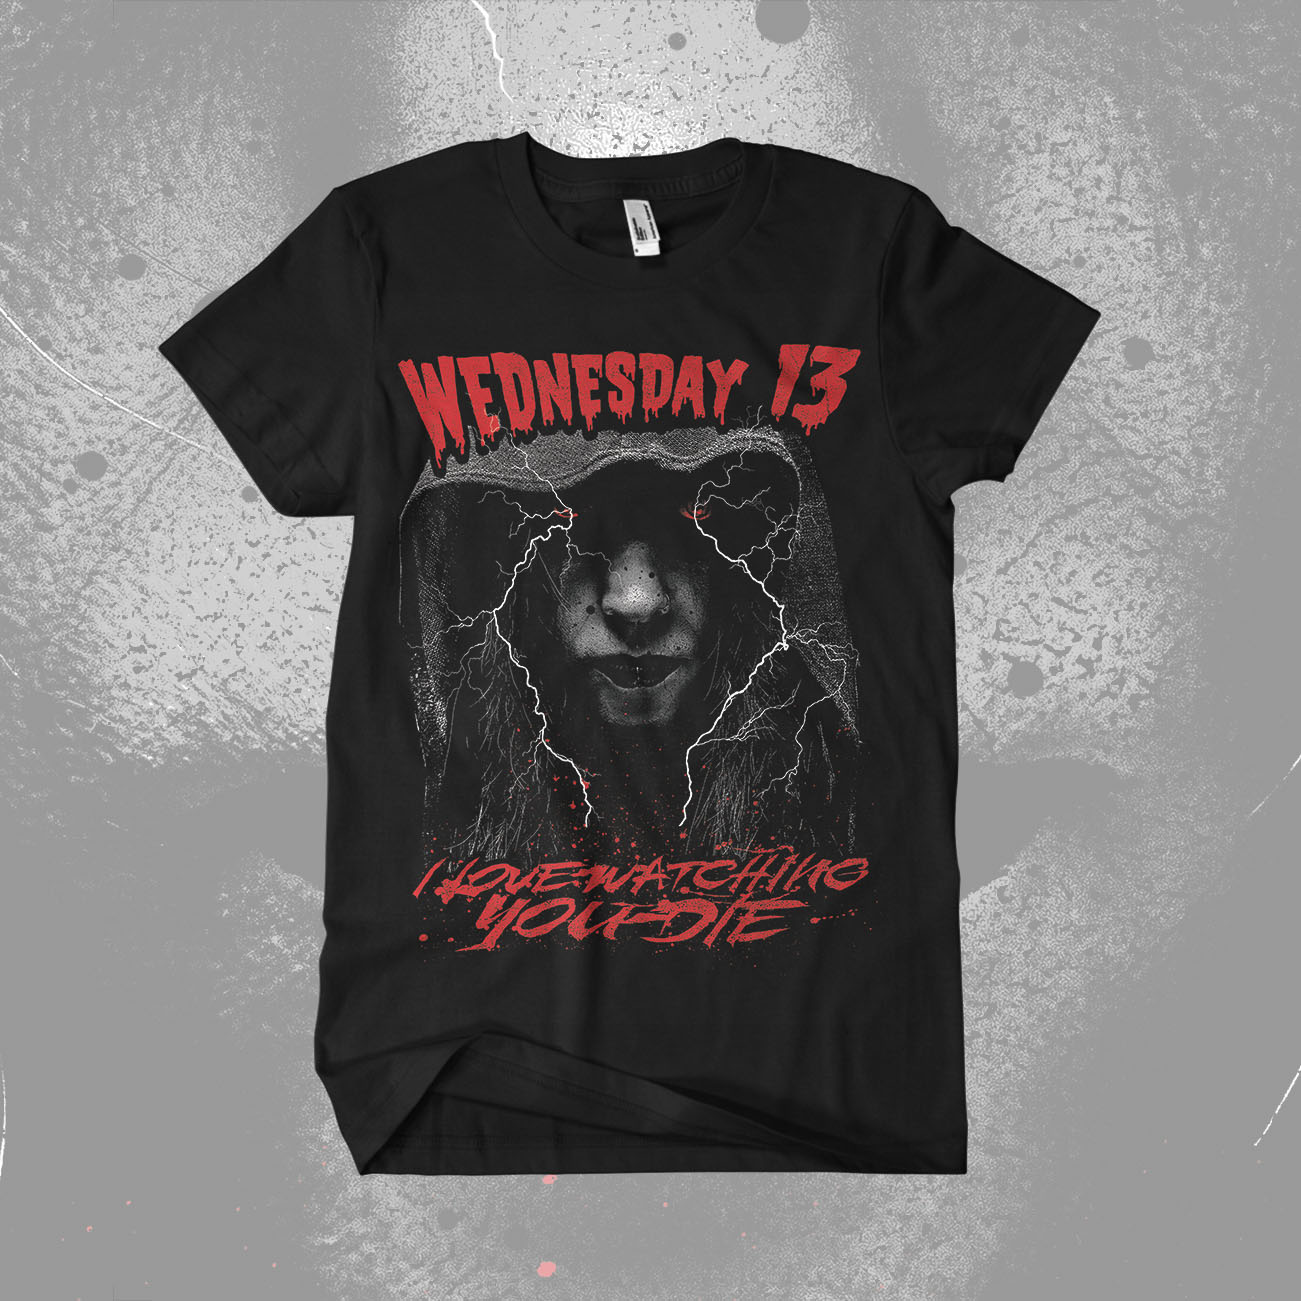 Wednesday 13 - 'I Love Watching You Die' T-Shirt - Wednesday13